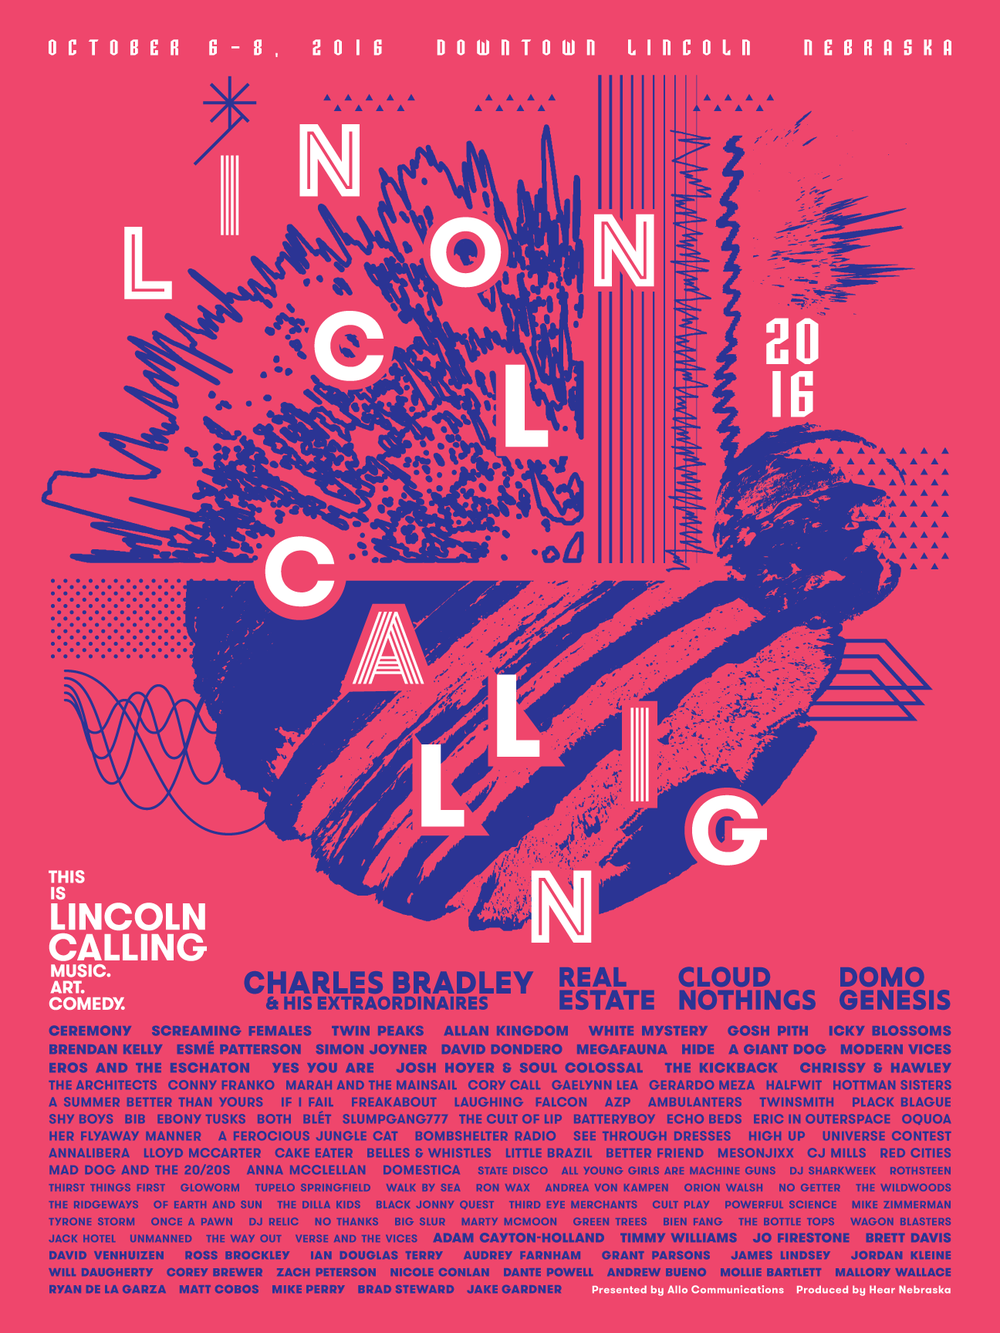 Lincoln Calling 2016: Music. Art. Comedy.